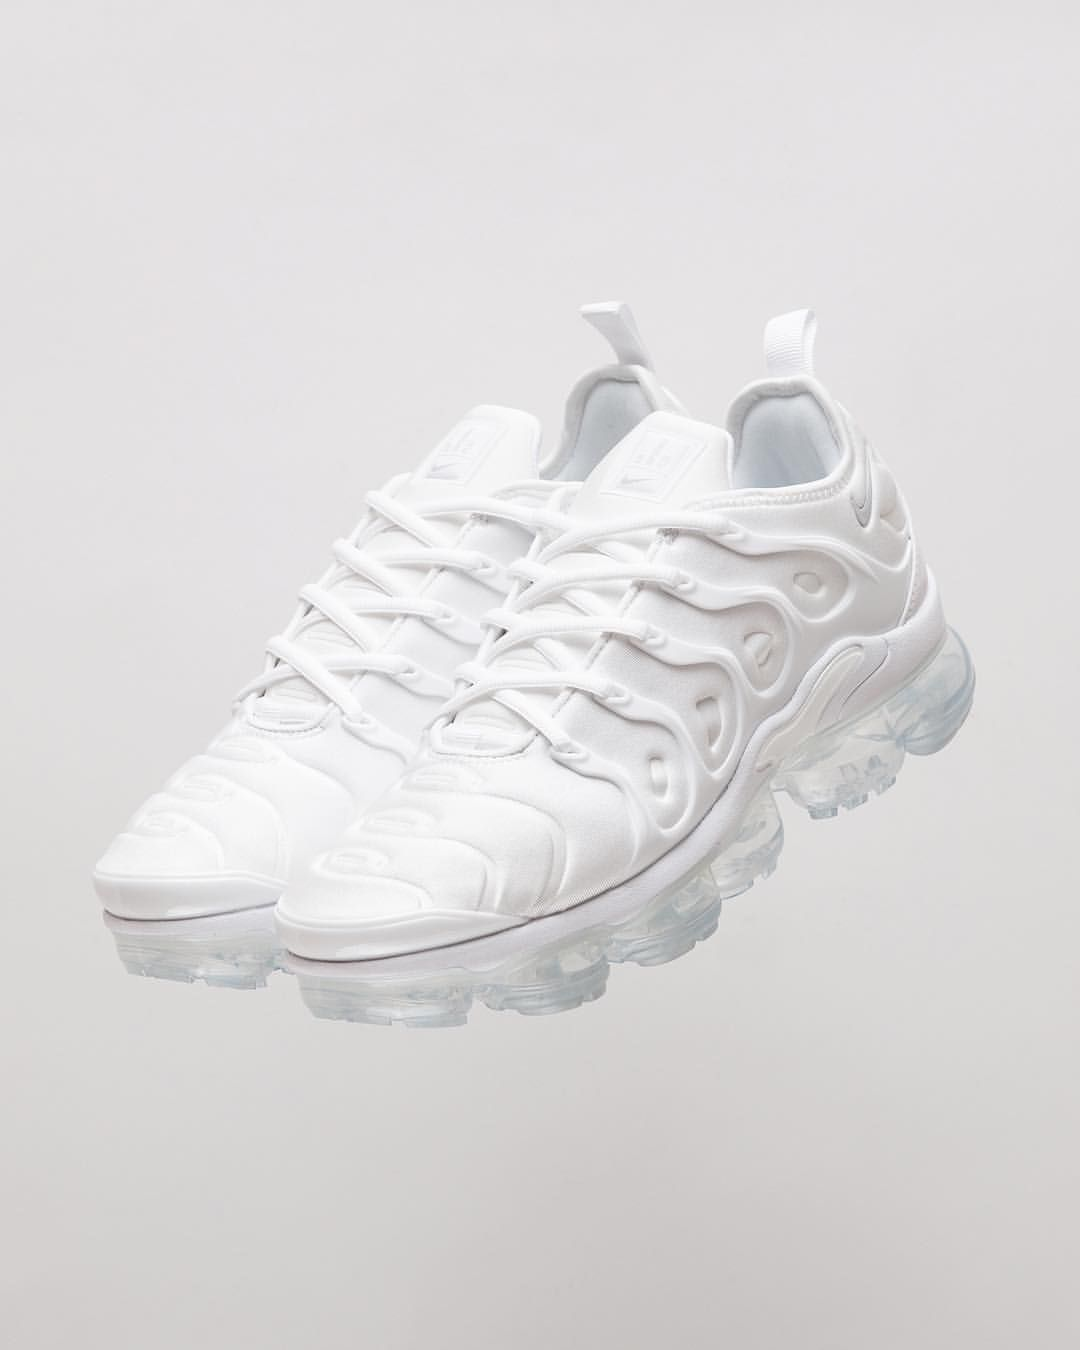 9ec4f2dd0cf Titolo Sneaker Boutique sur Instagram   NIKE Air Vapormax Plus ▫ White White -Pure Platinum⠀⠀⠀⠀⠀ ⠀⠀⠀⠀⠀ available online and in-store  titoloshop ...